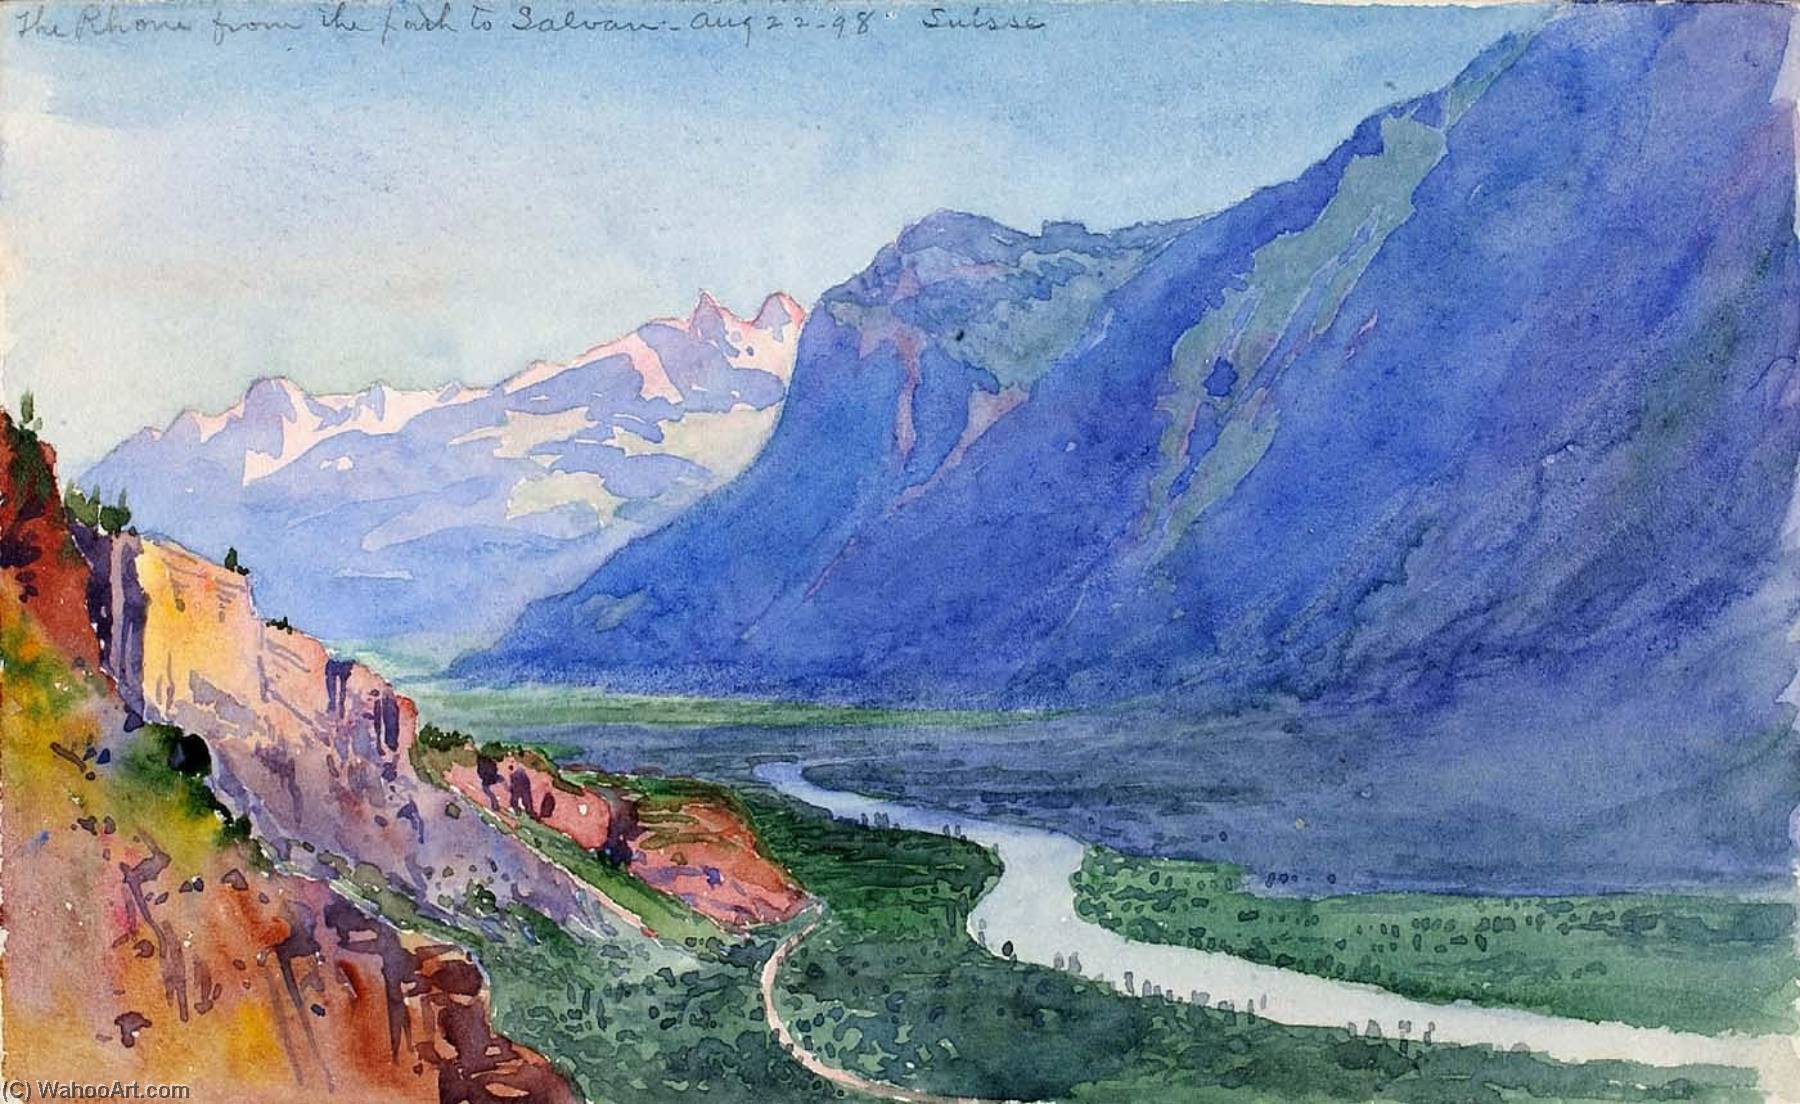 The Rhone from the Path to Salvari (Switzerland), 1898 by George Elbert Burr | Art Reproduction | ArtsDot.com